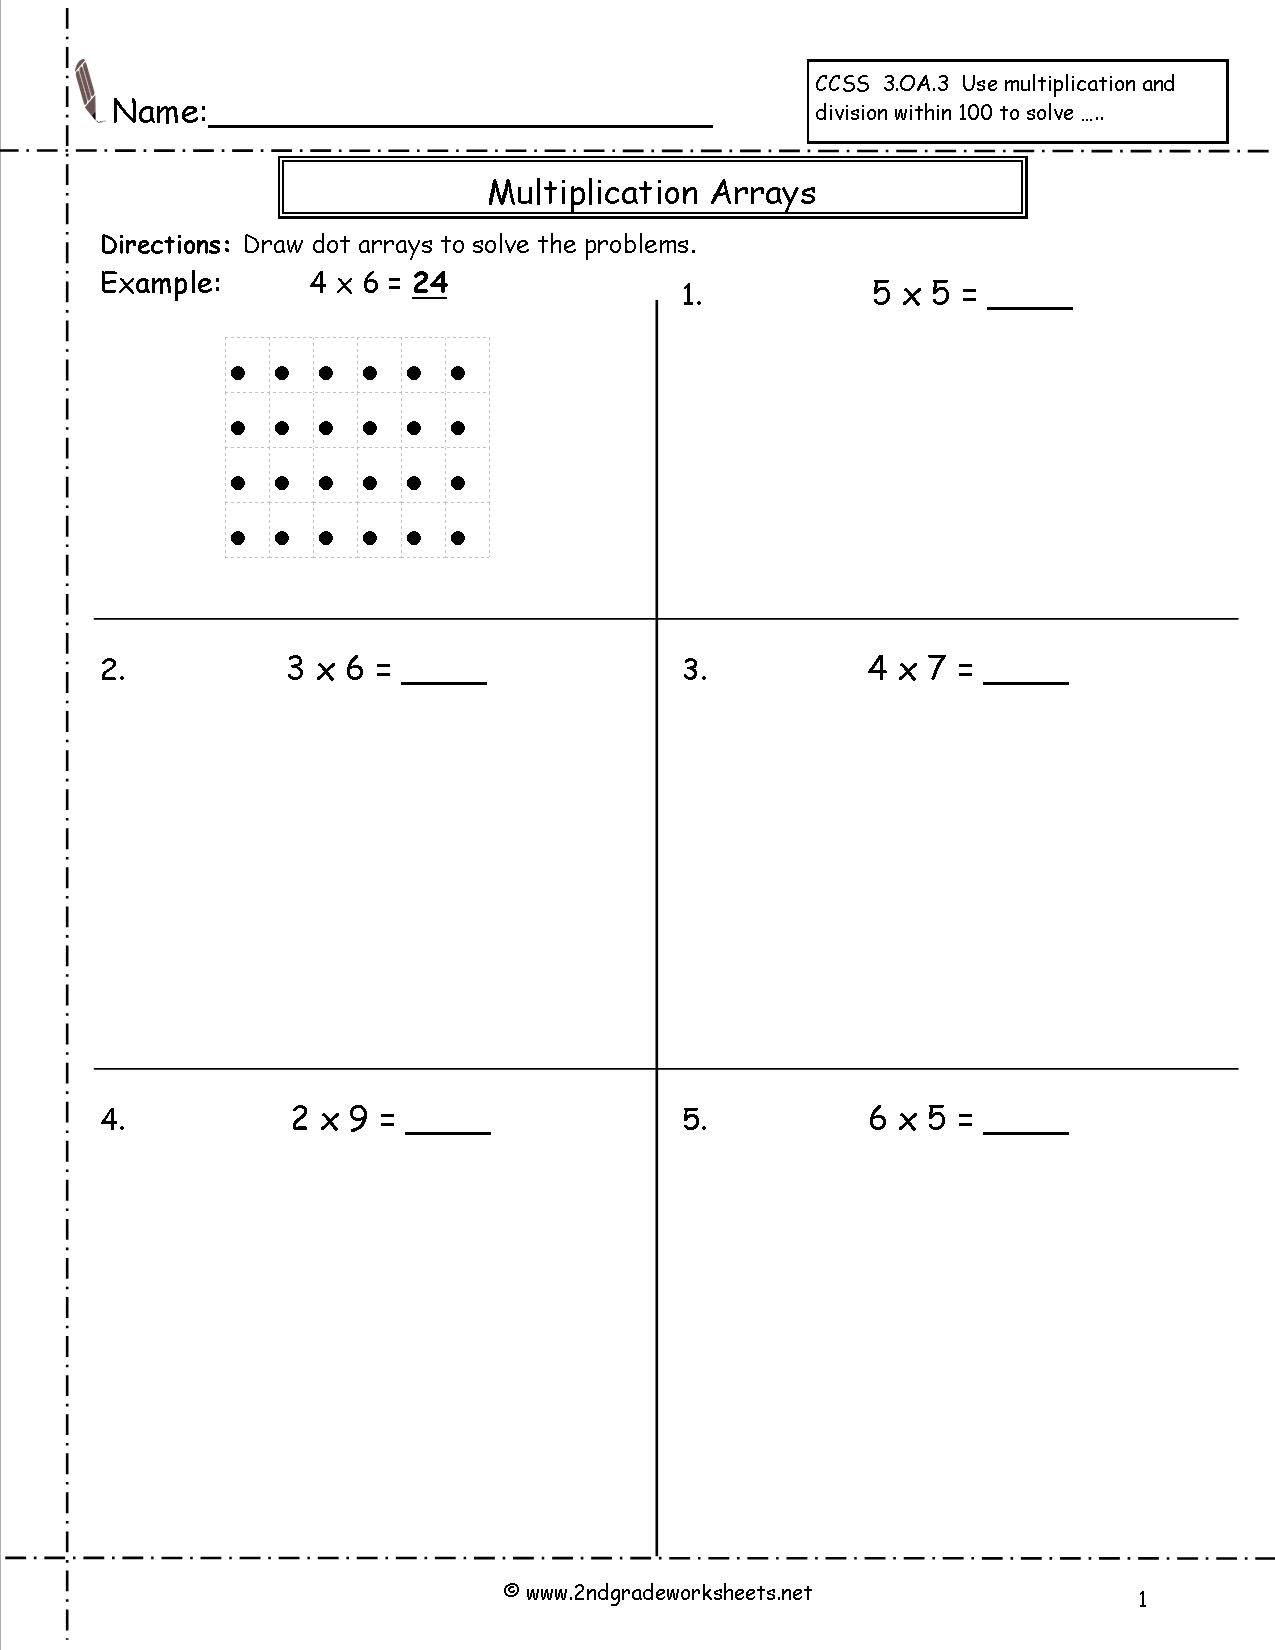 Multiplication Arrays Worksheets